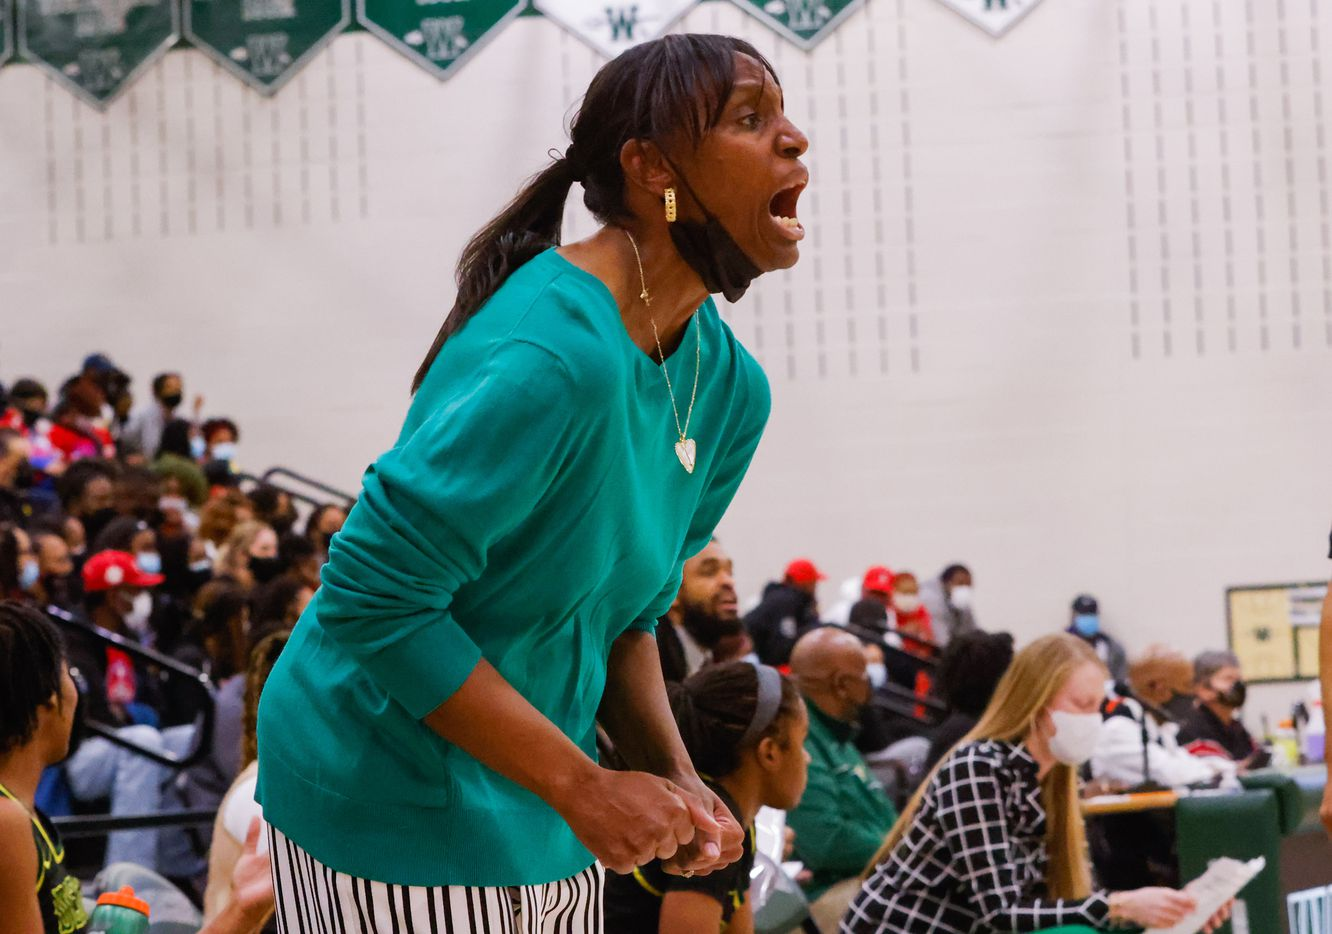 DeSoto's coach Andrea Robinson during the first half of a girls basketball Class 6A Region II UIL game against Duncanville in Waxahachie on Tuesday, March 2, 2021. DeSoto won the game 52-39. (Juan Figueroa/ The Dallas Morning News)